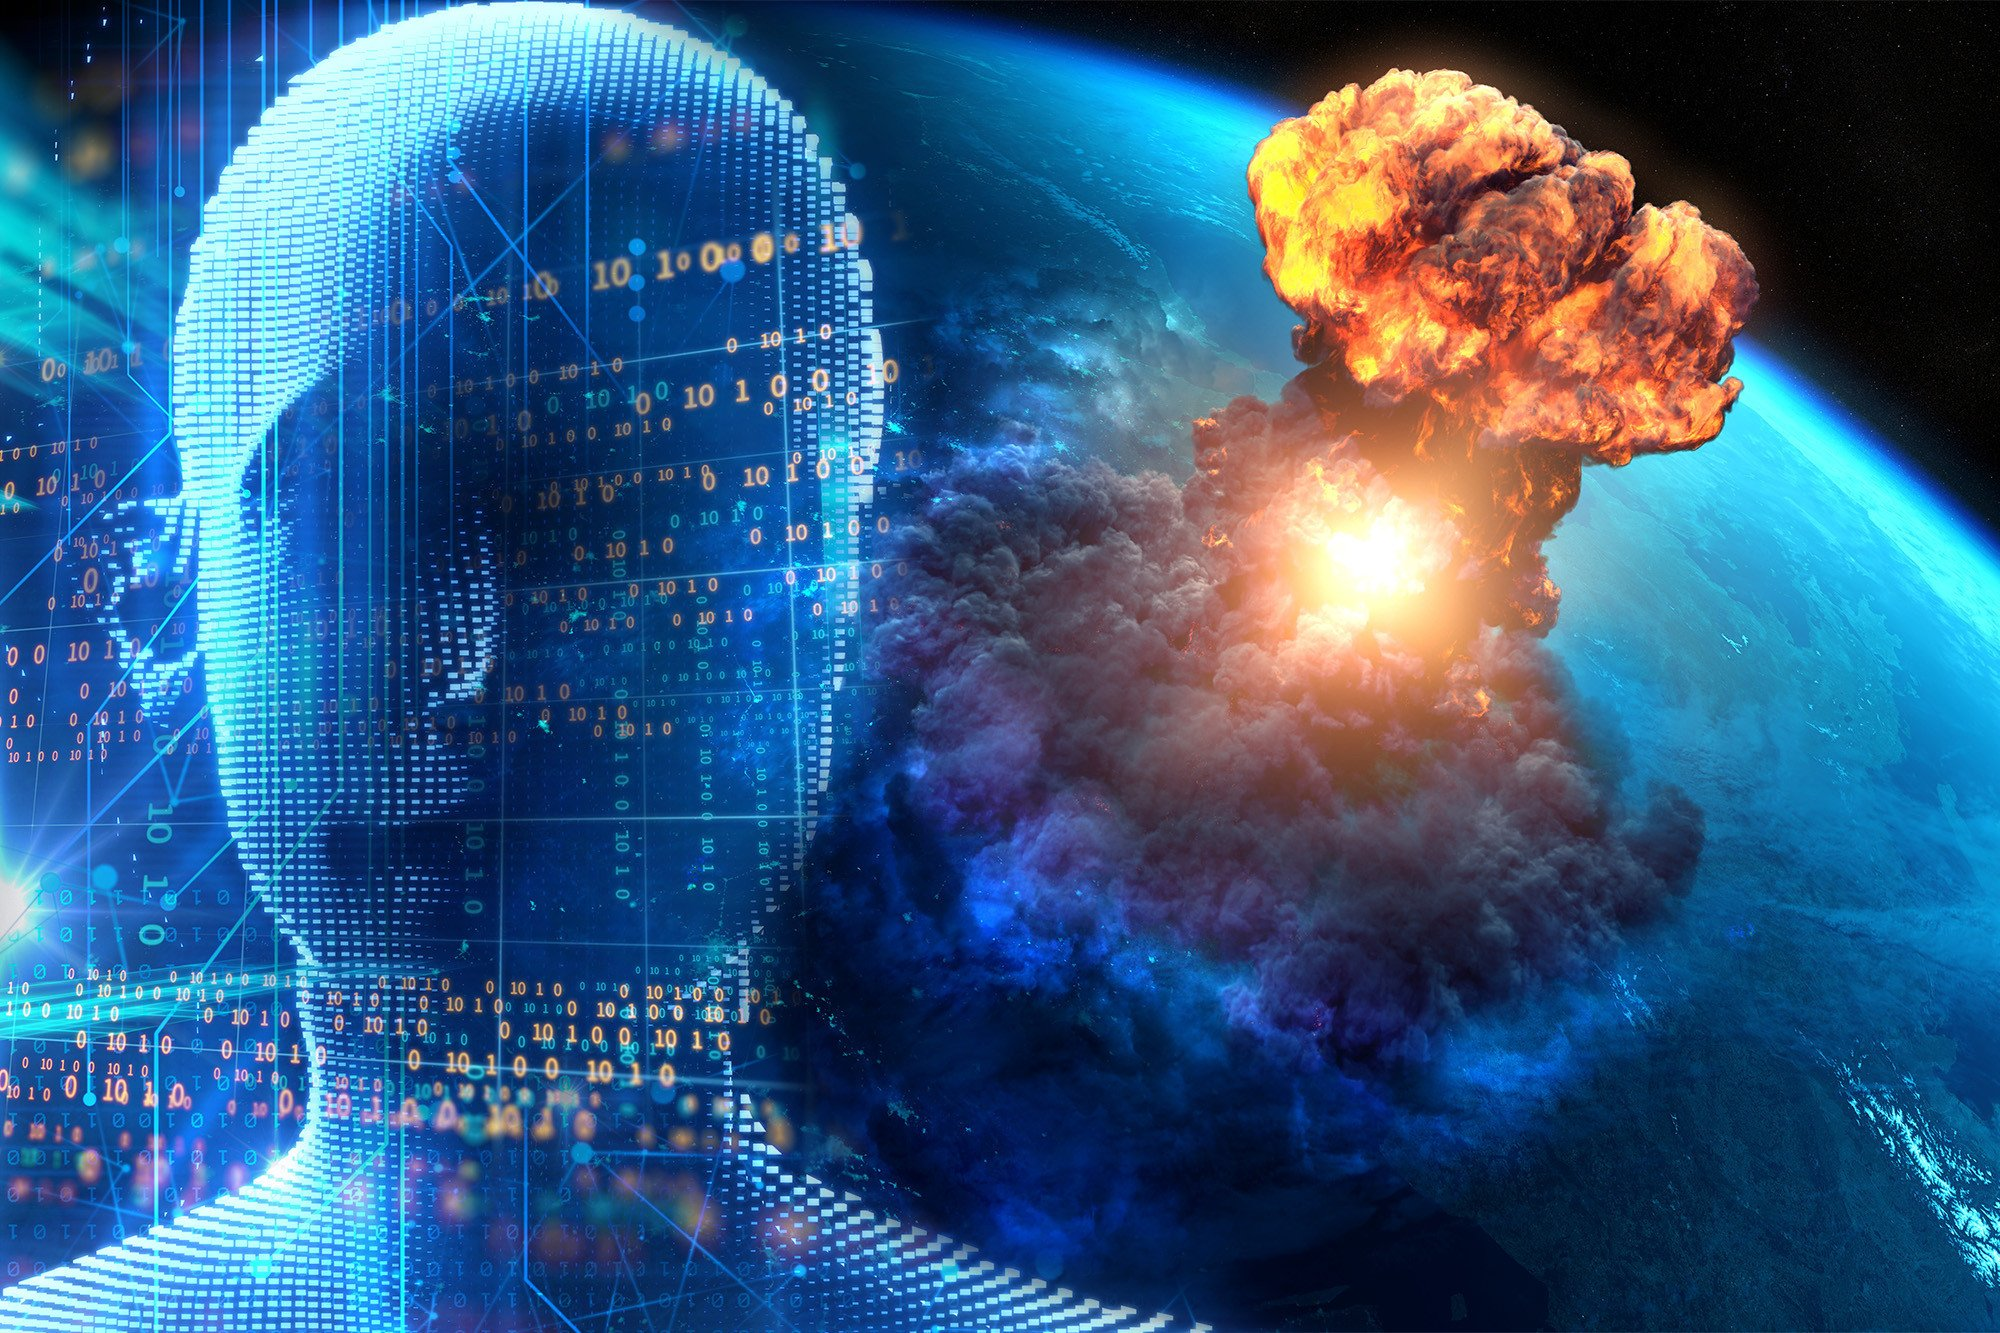 Doomsday AI machines could lead to nuclear war